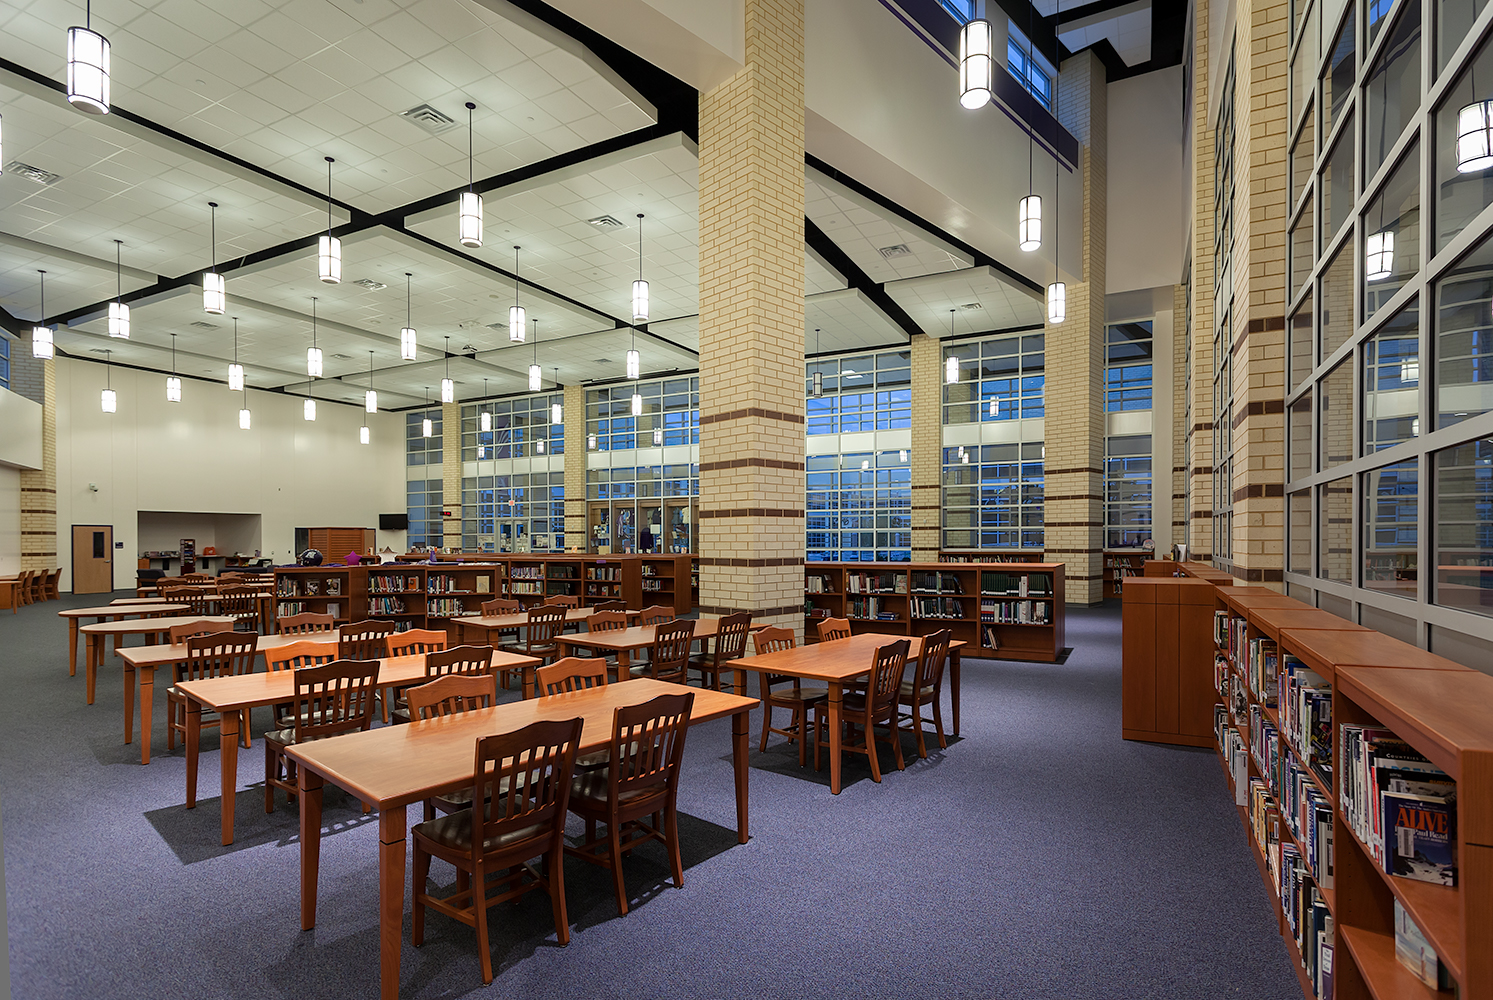 Midland Arts timeless cylindrical pendants above an education lighting application in a campus library.